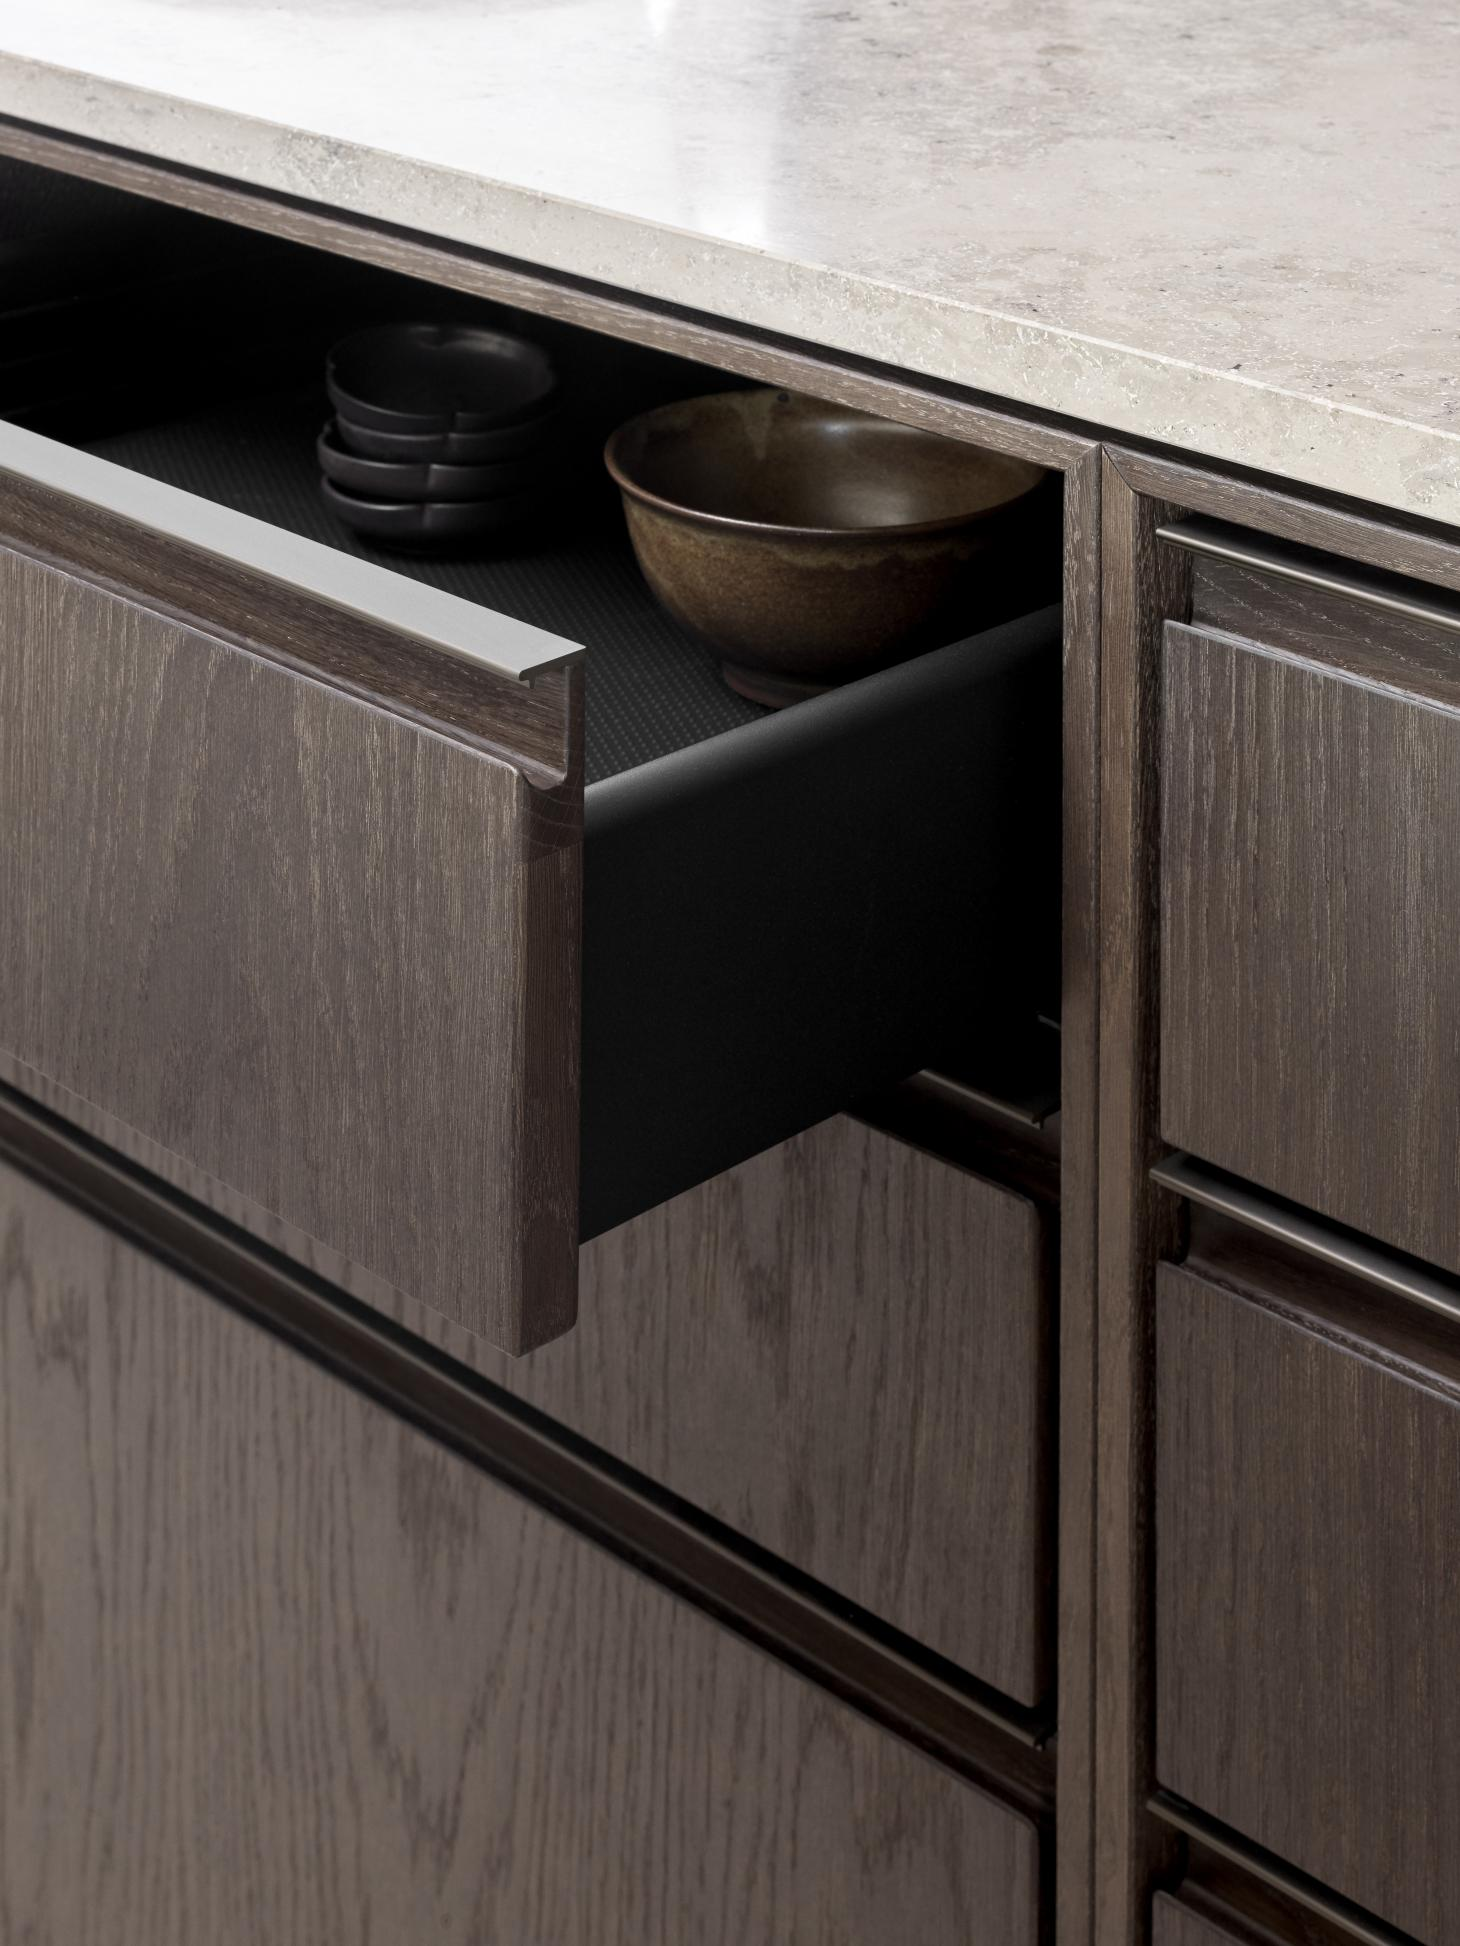 Vipp Kitchen updated with new organic materials   Wallpaper